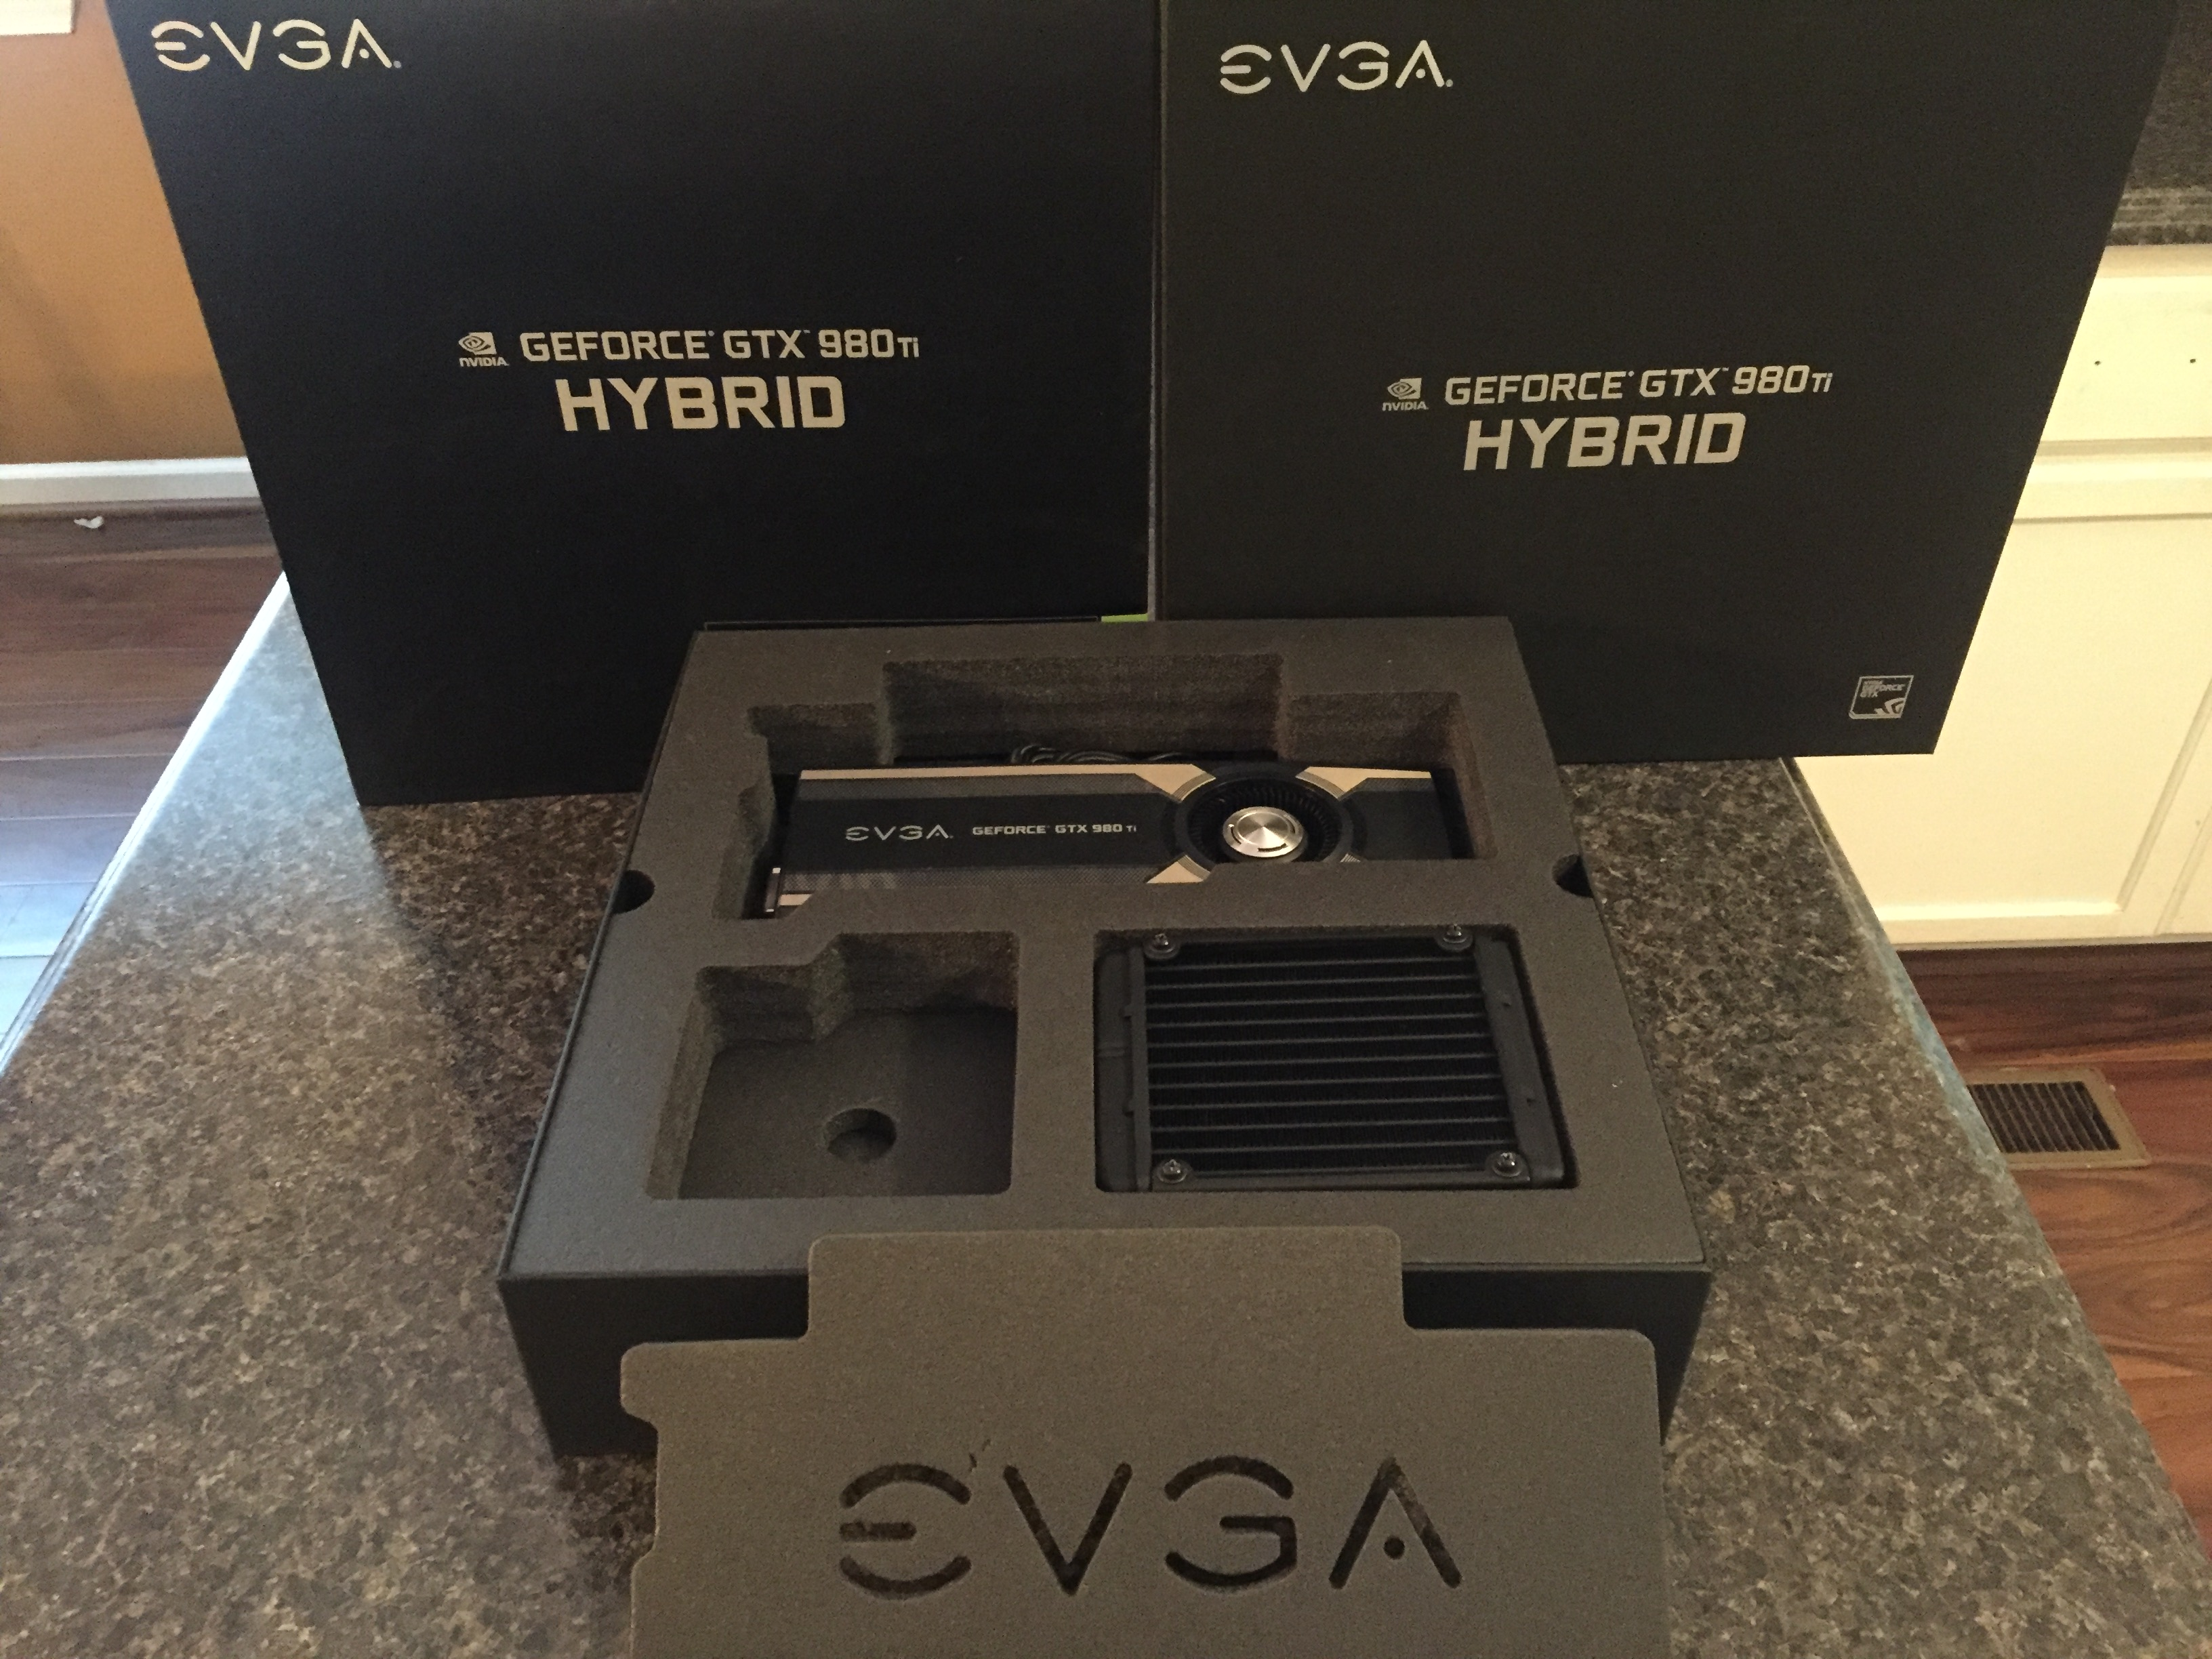 For Sale: EVGA GeForce GTX 980Ti 6GB HYBRID graphics card